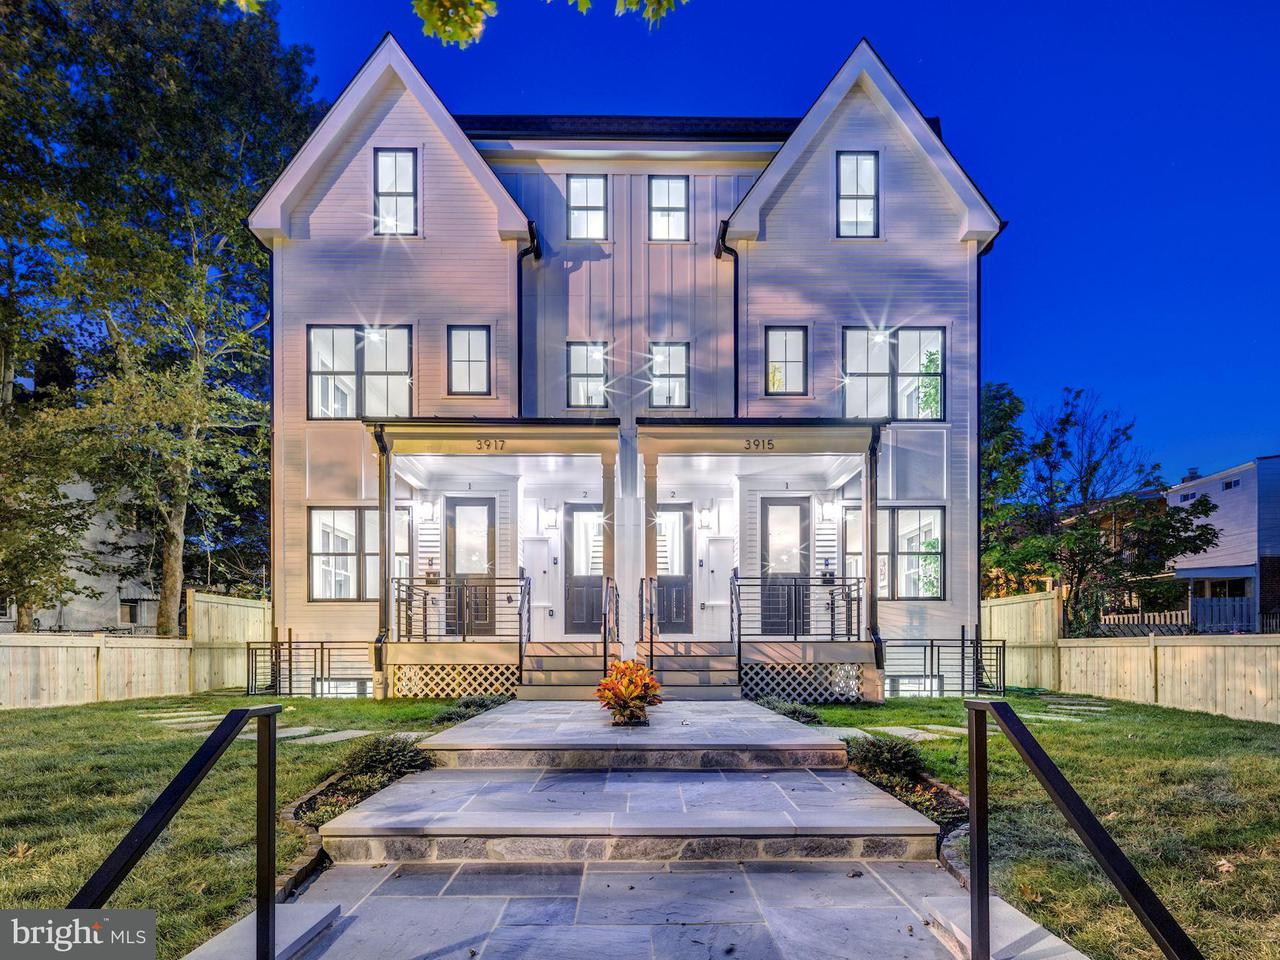 Townhouse for Sale at 3917 5TH ST NW #2 3917 5TH ST NW #2 Washington, District Of Columbia 20011 United States